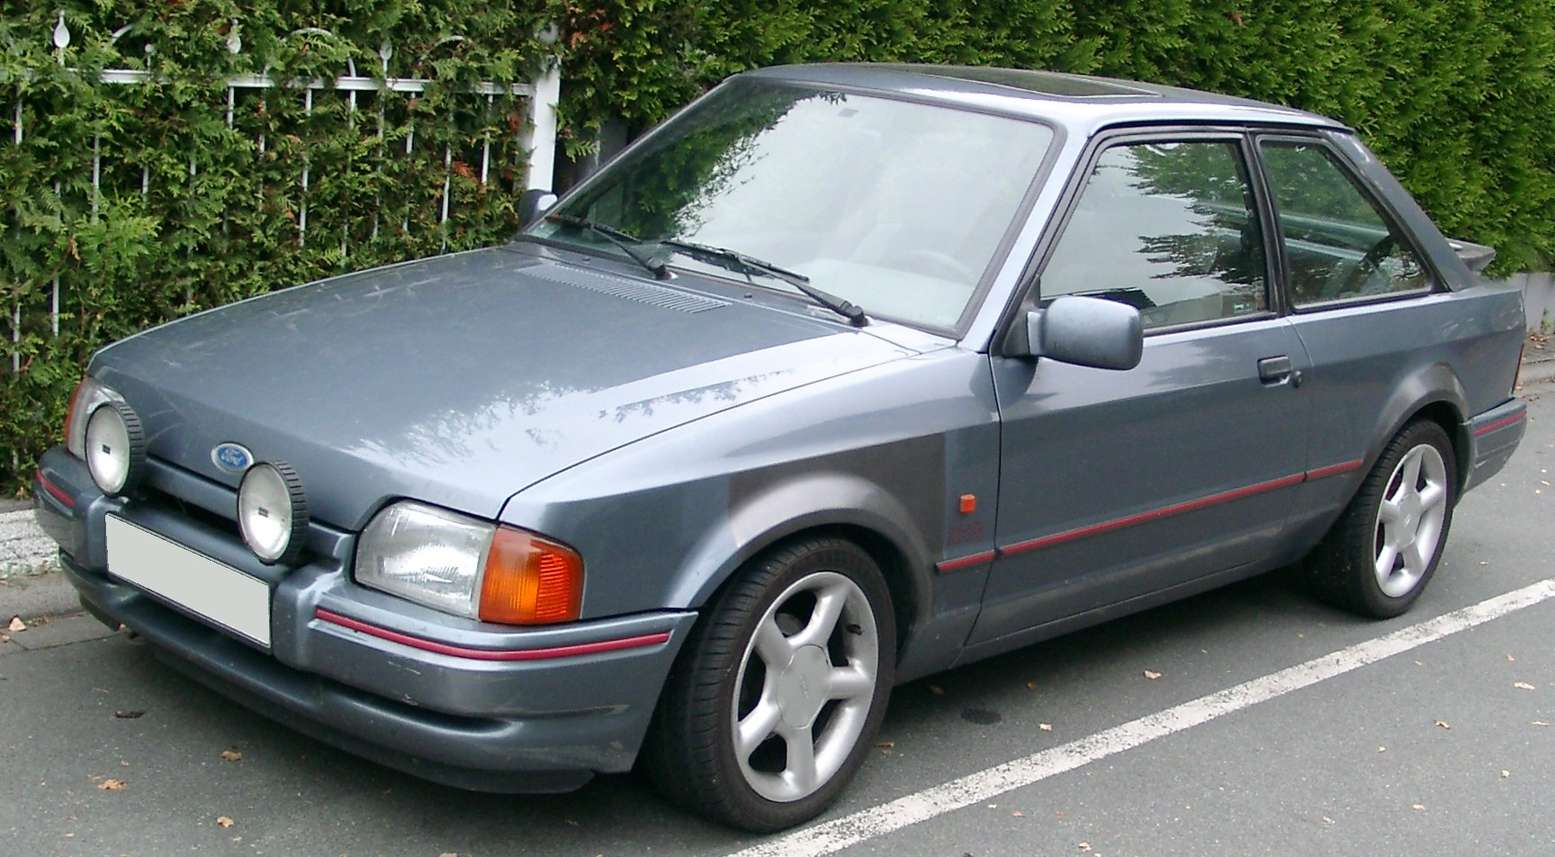 Ford Escort Xr3i #7854789